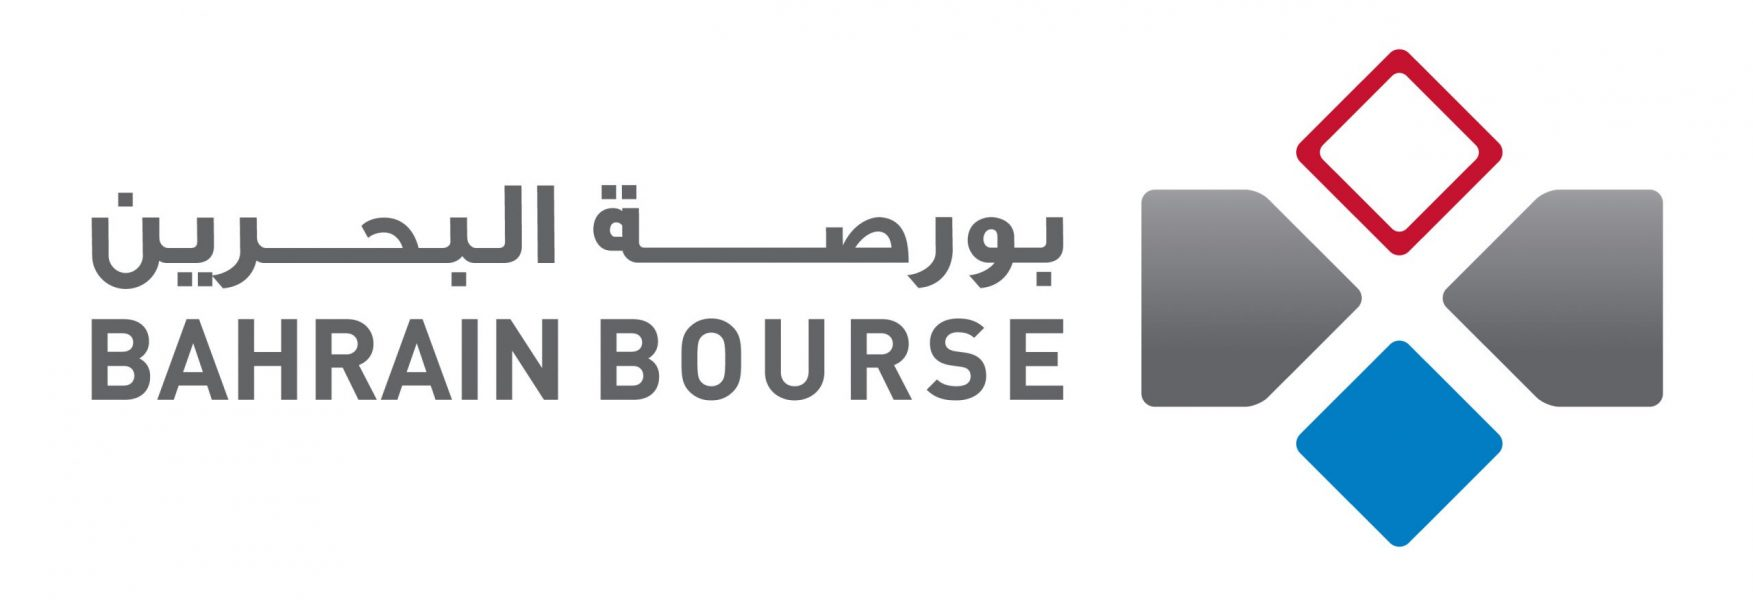 Bahrain-Bourse-Adopts-Distribution-License-Fees-fo